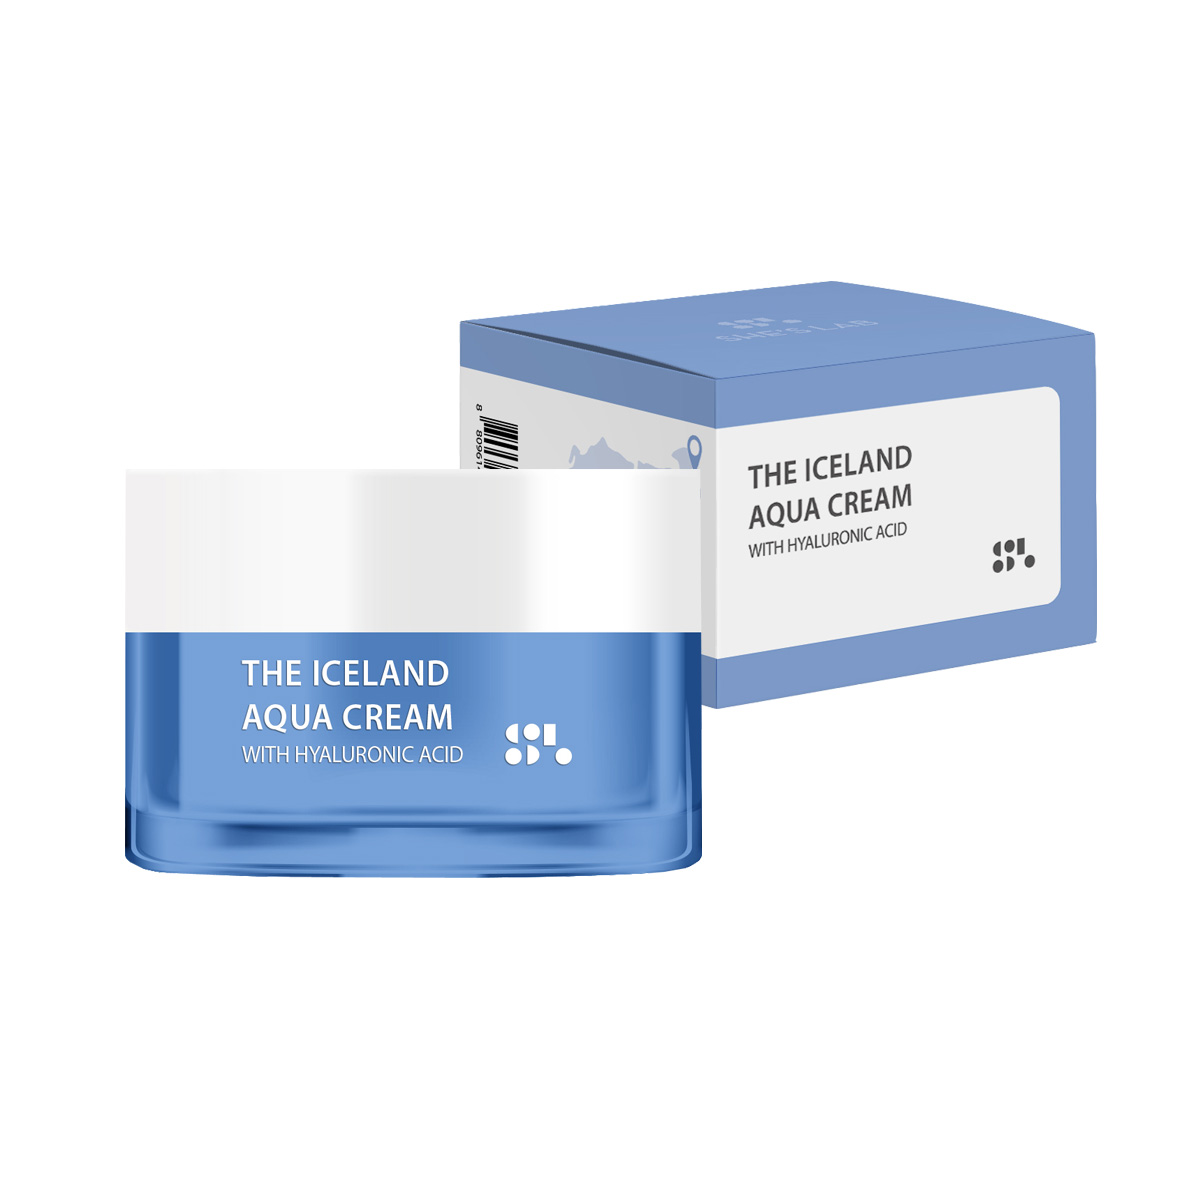 SHE'S LAB THE ICELAND AQUA CREAM 50g